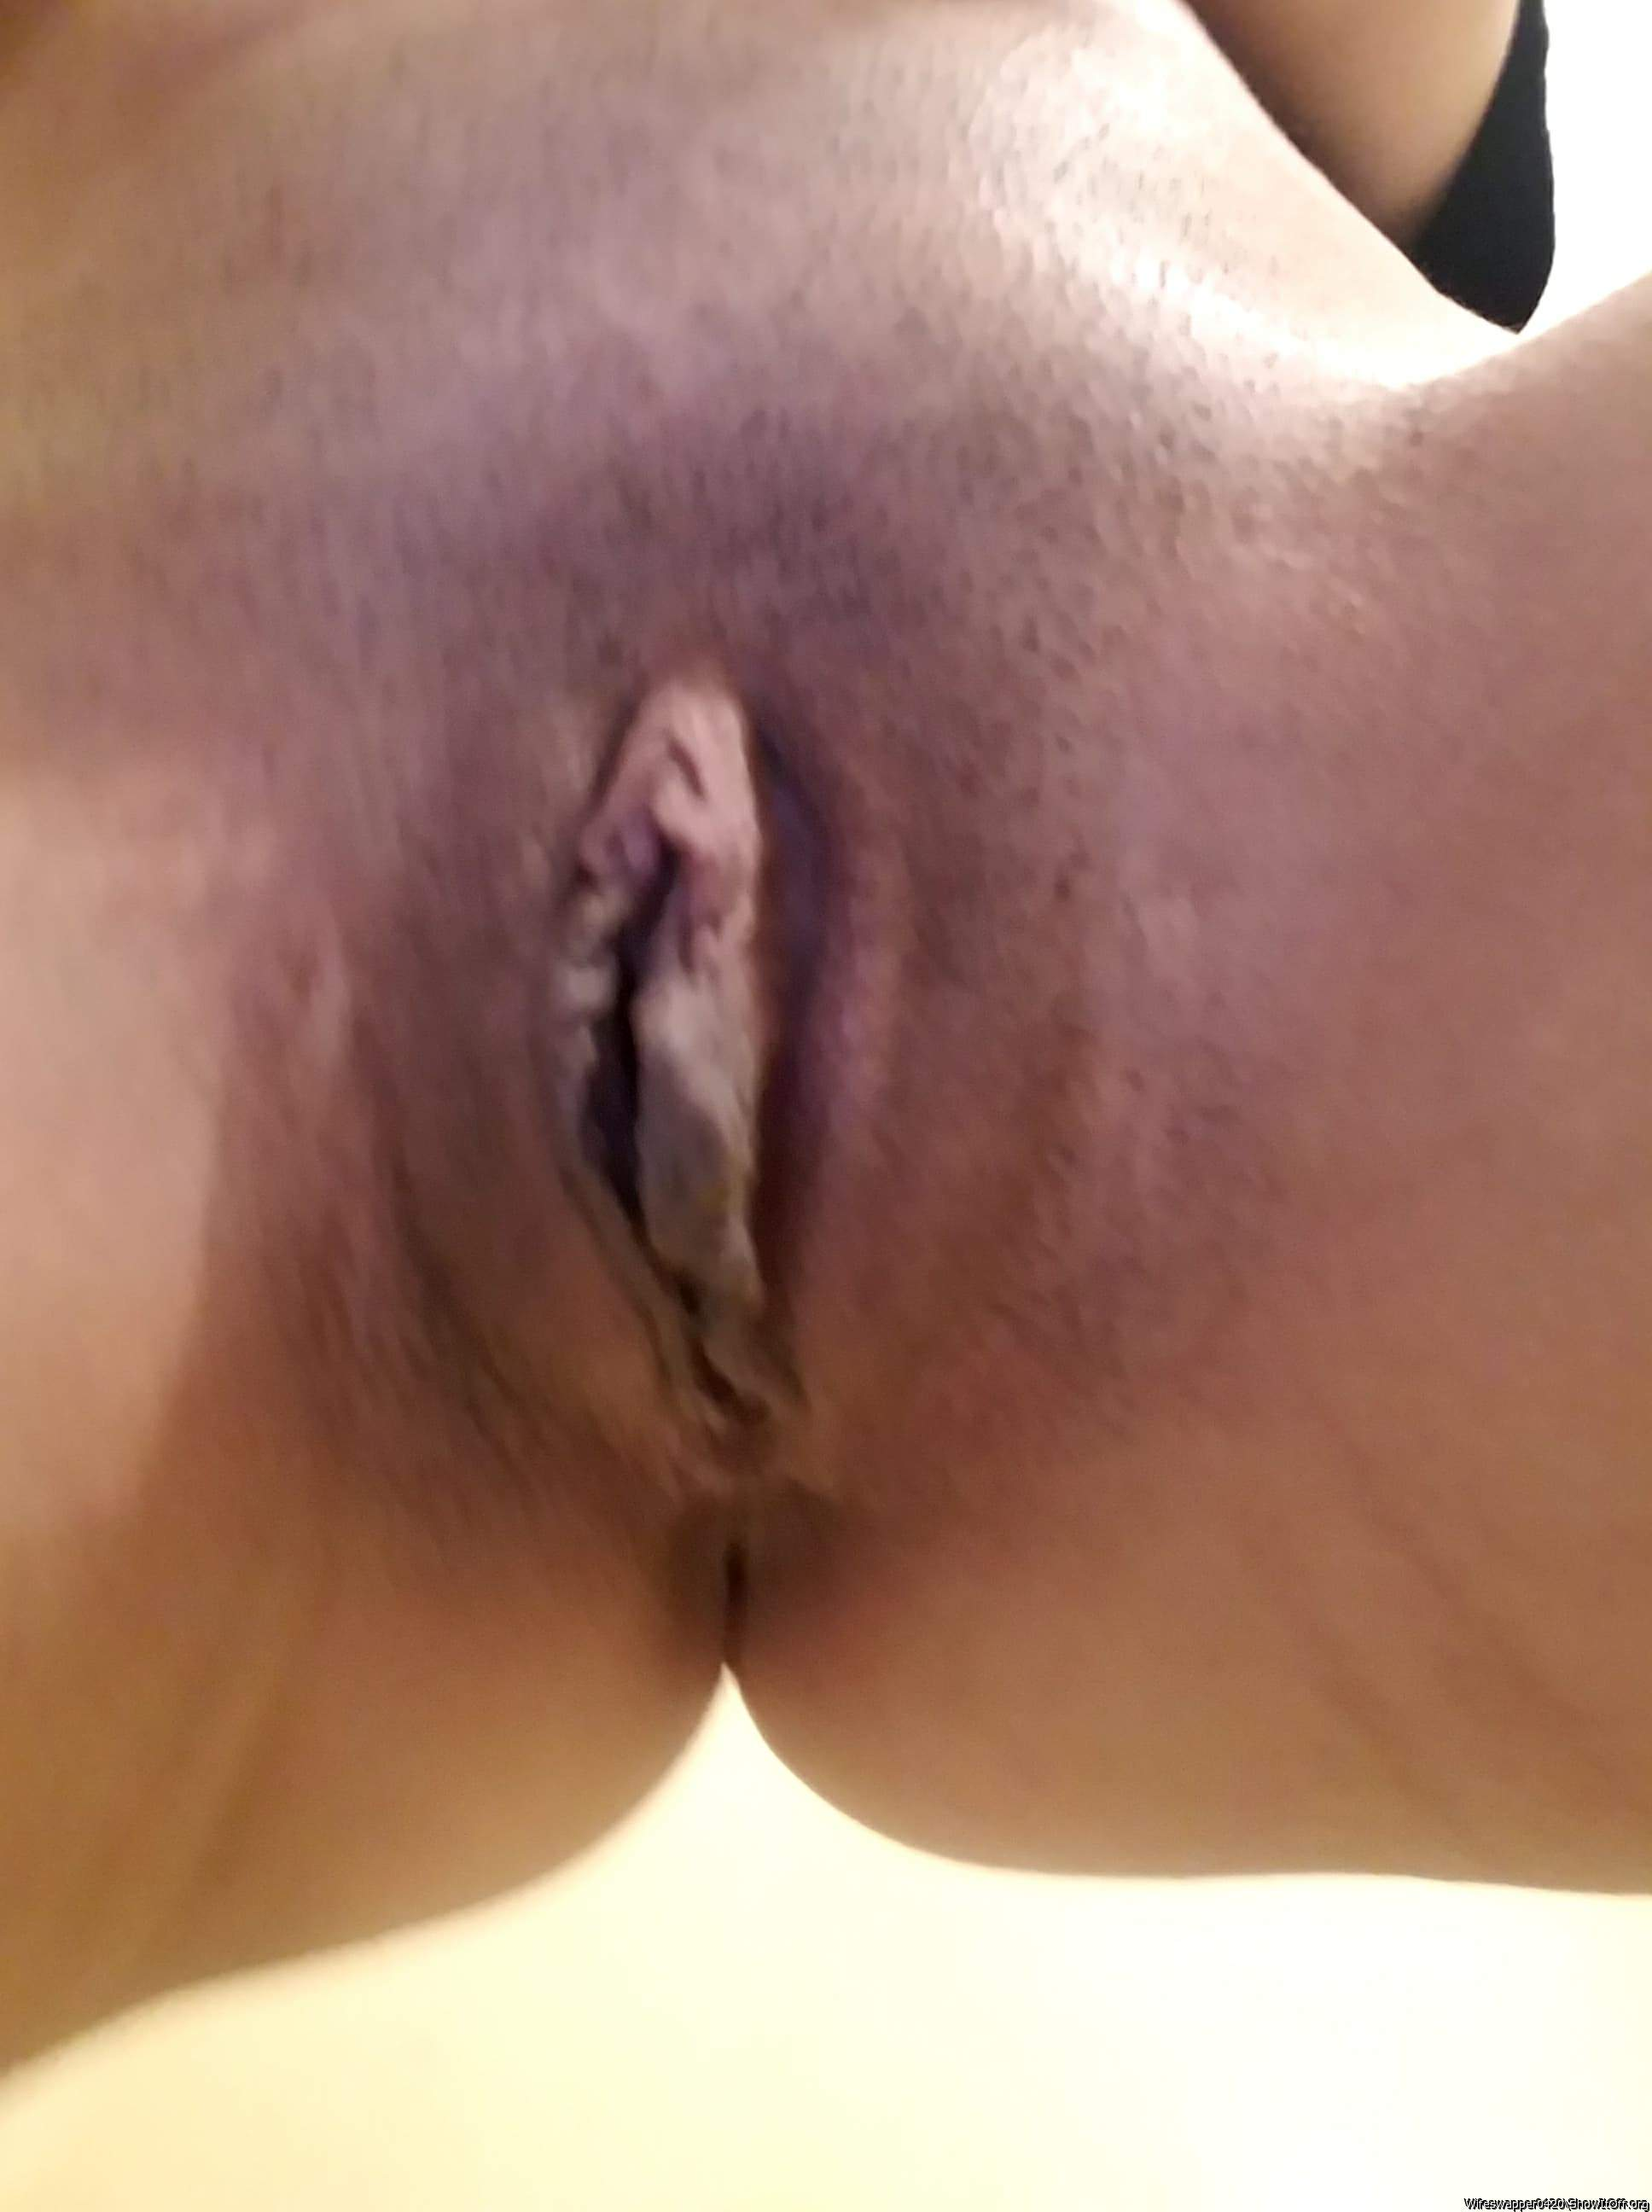 Awesome looking pussy lips I would love to suck on them